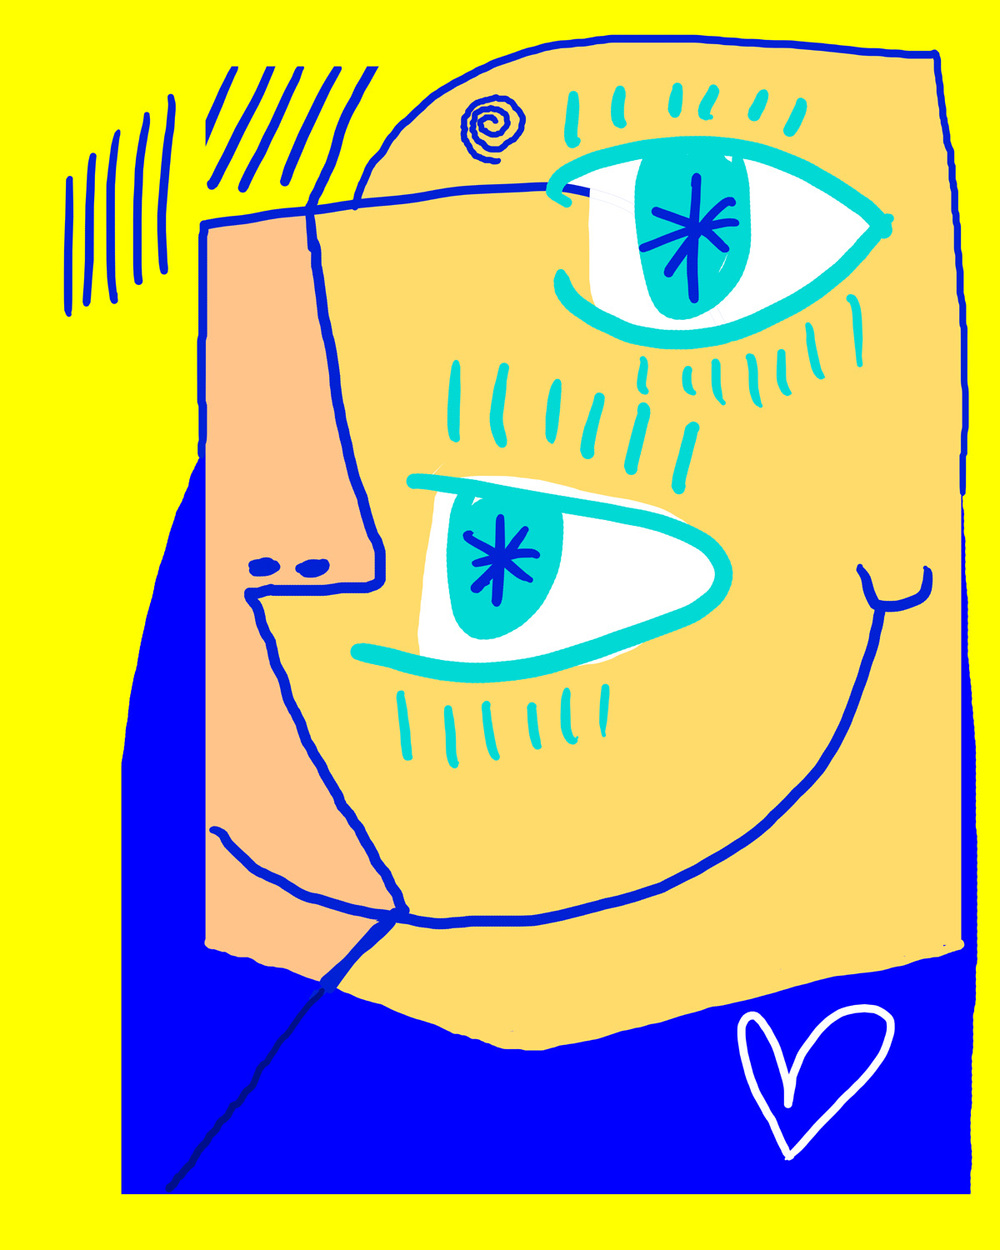 Quirky blue & yellow portrait by Matt Vaillette